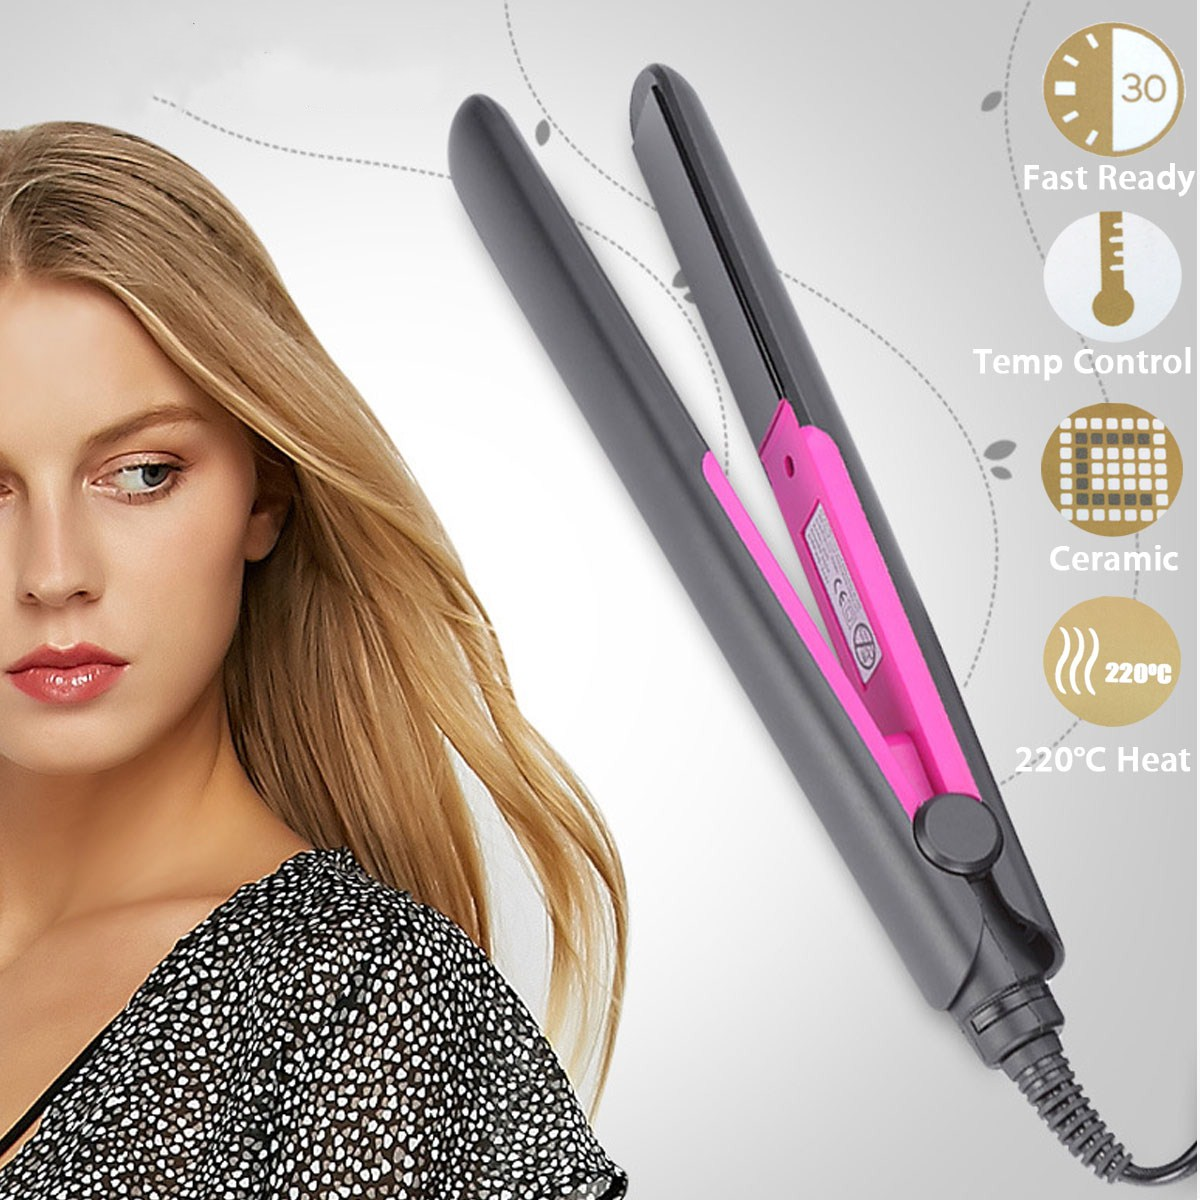 купить Fast Heating Flat Iron Straightening Irons Styling Tools Professional Ceramic Tourmaline Plate Perm Hair Straightener